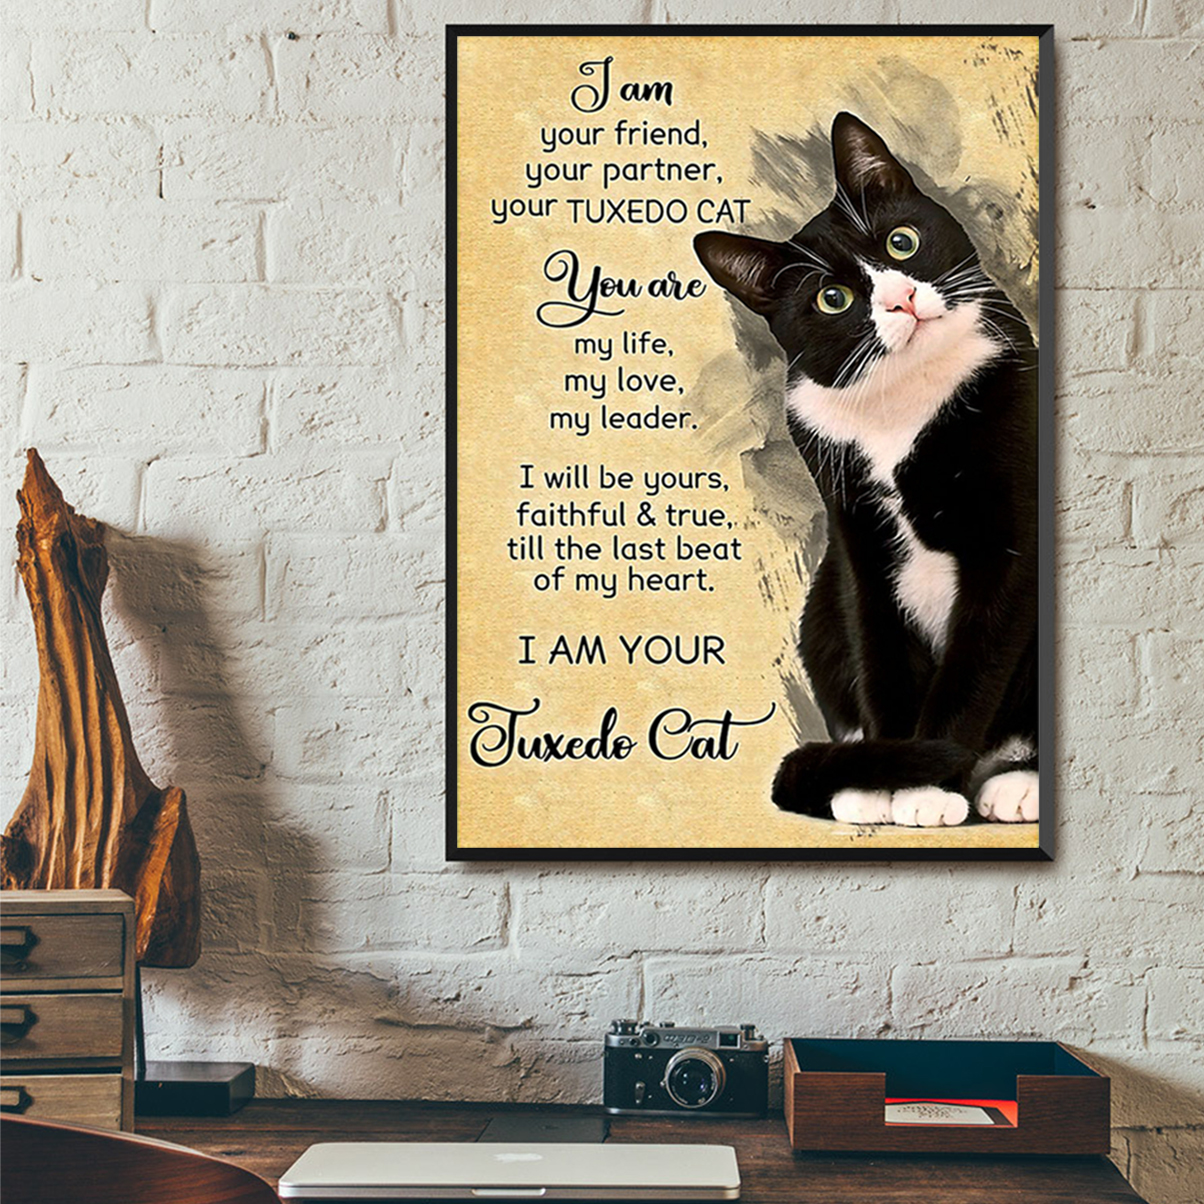 I Am Your Friend Your Partner Your Tuxedo Cat Poster A2